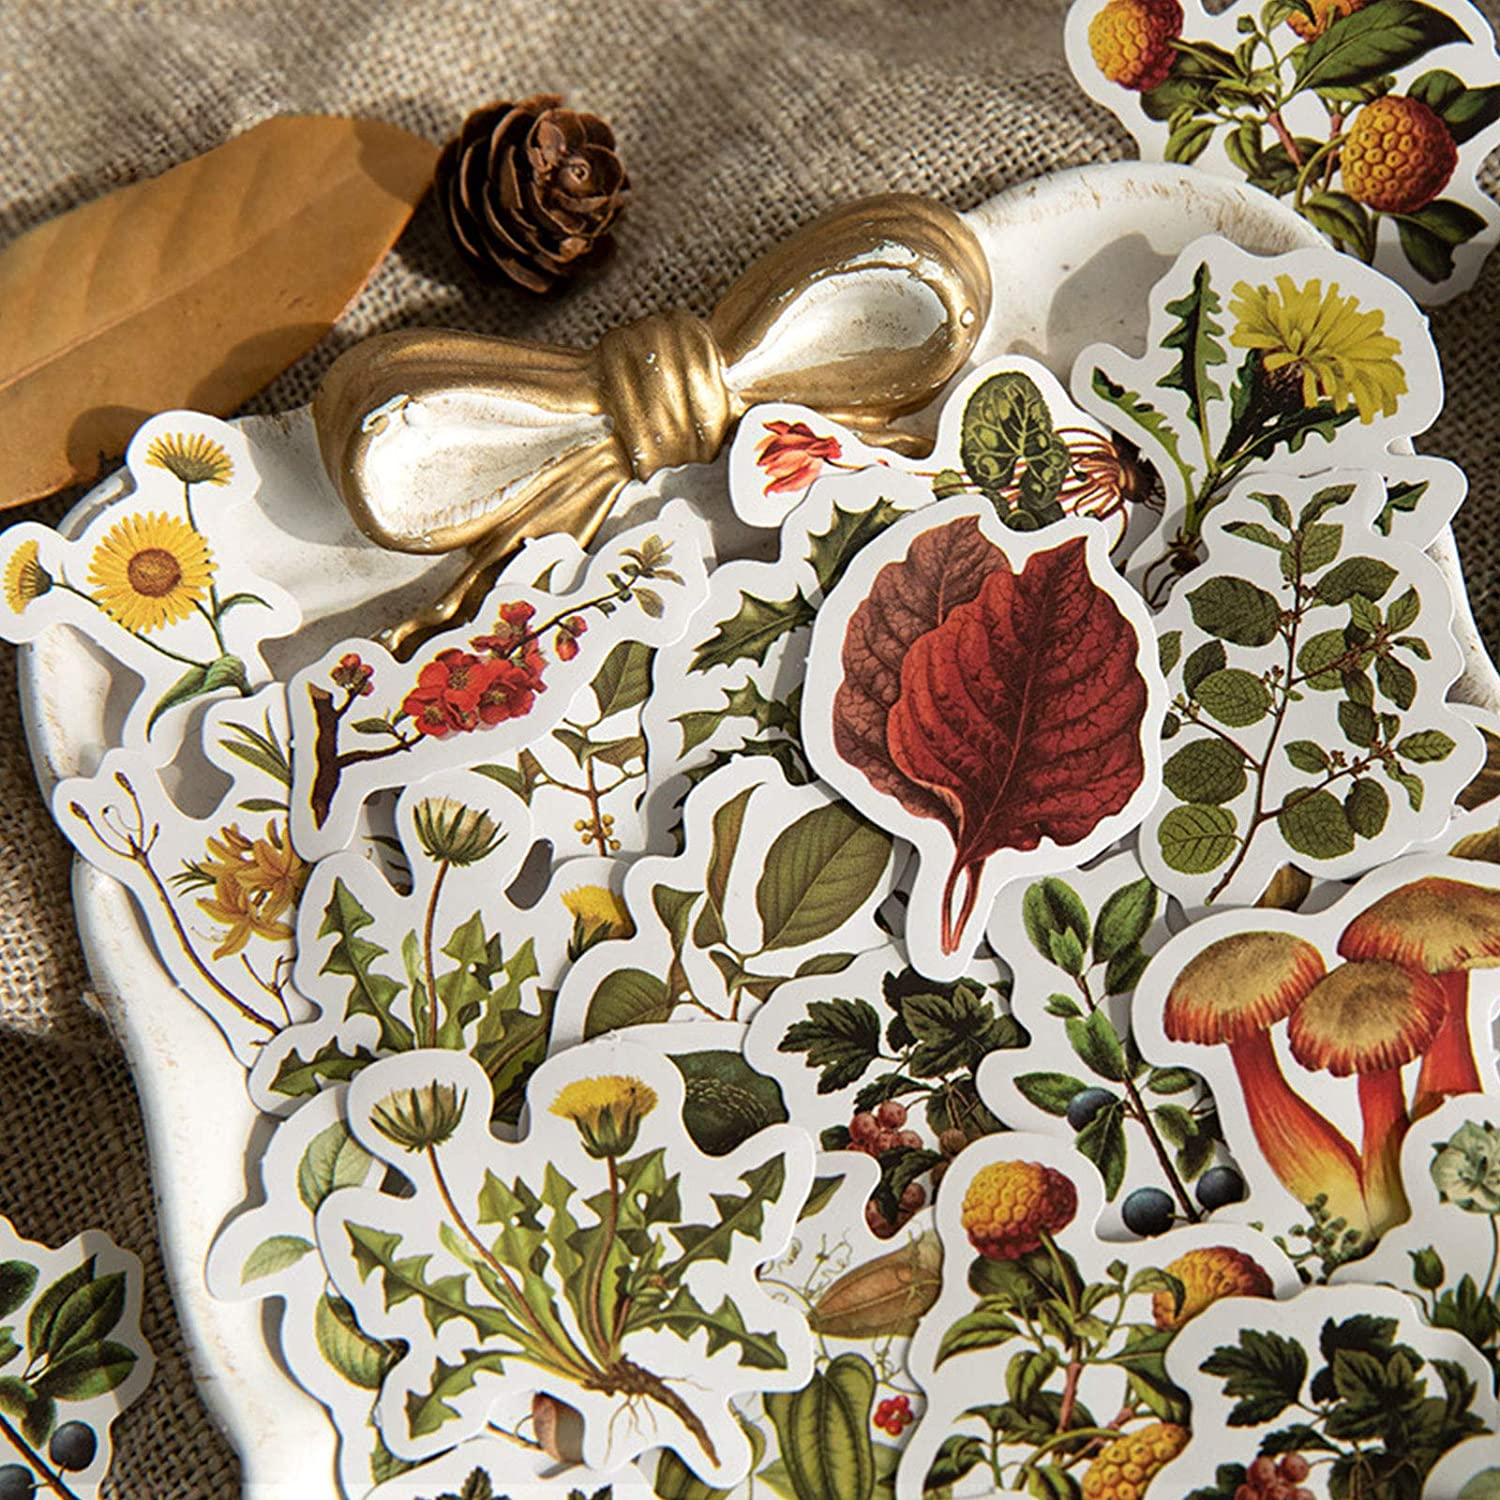 ZMLSED Vintage Natural Stickers 46Pcs Spring Forest Flower Mushroom Decorative Retro Decals Adhesive Aesthetic Trendy for Scrapbook Laptop Skins Album DIY Craft Daily Planner